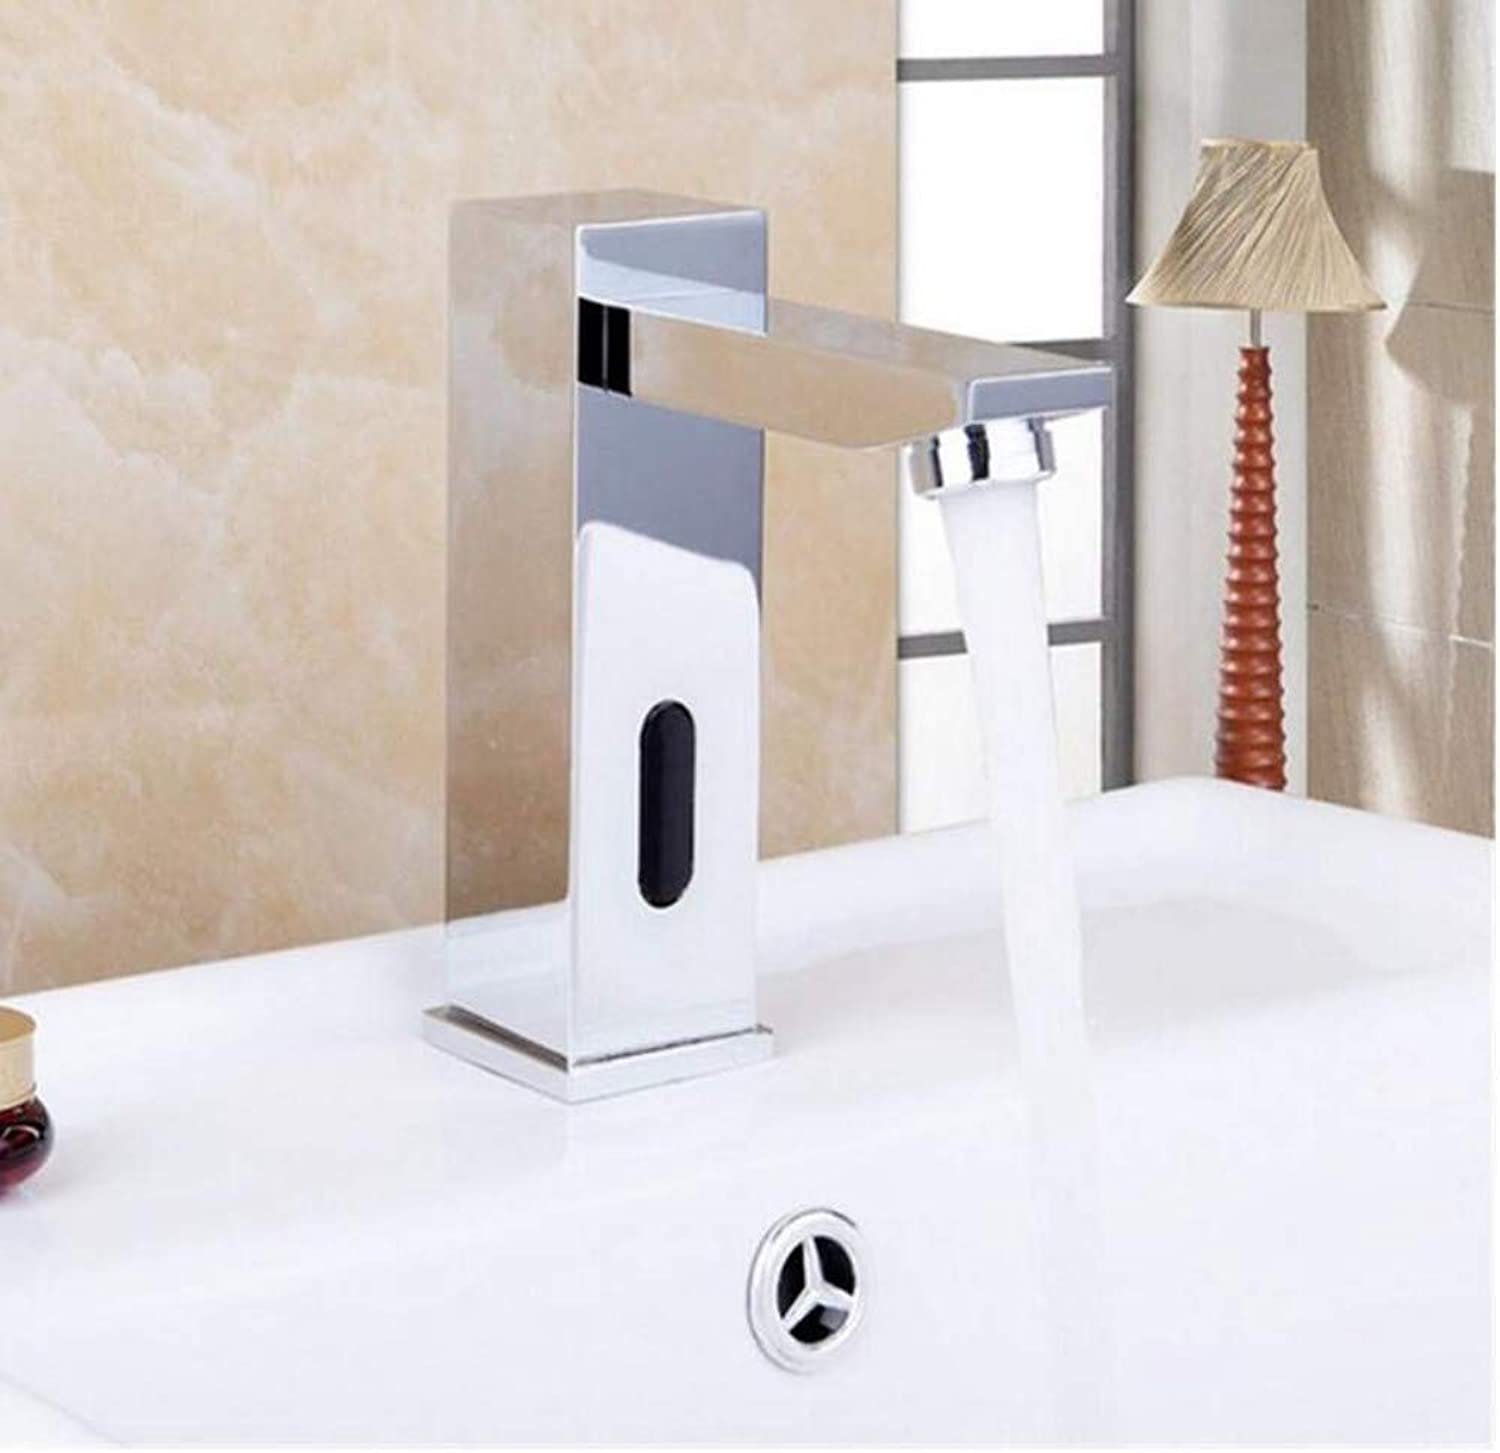 Modern Double Basin Sink Hot and Cold Water Faucetsensor Faucet Bathroom Basin Sink Faucet